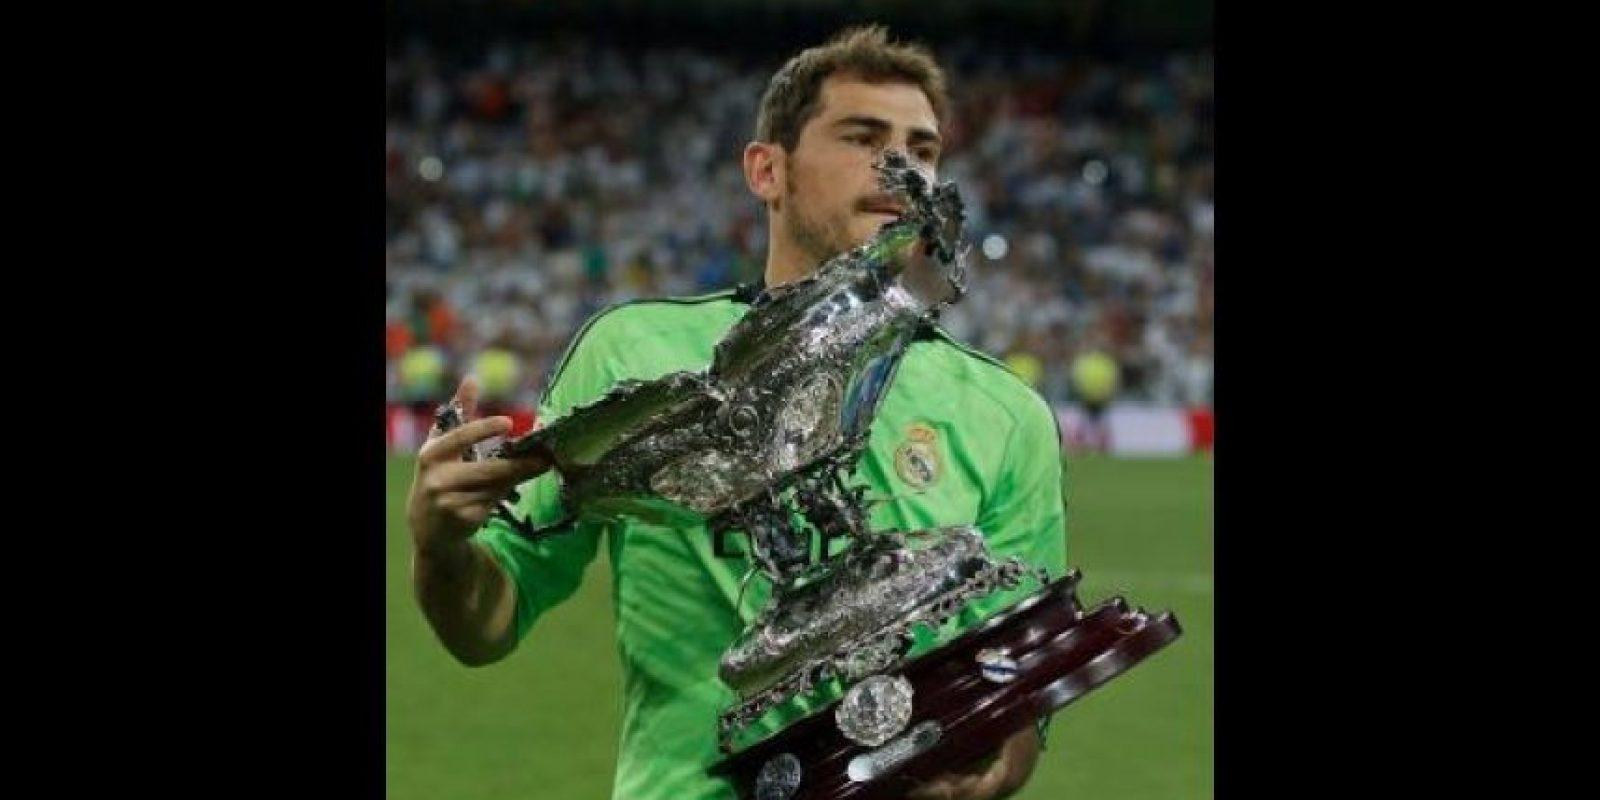 [Iker Casillas. 32 años. Con Real Madrid desde 1999. (Foto: Getty)] Iker Casillas. 32 años. Con Real Madrid desde 1999. Foto: Getty Images